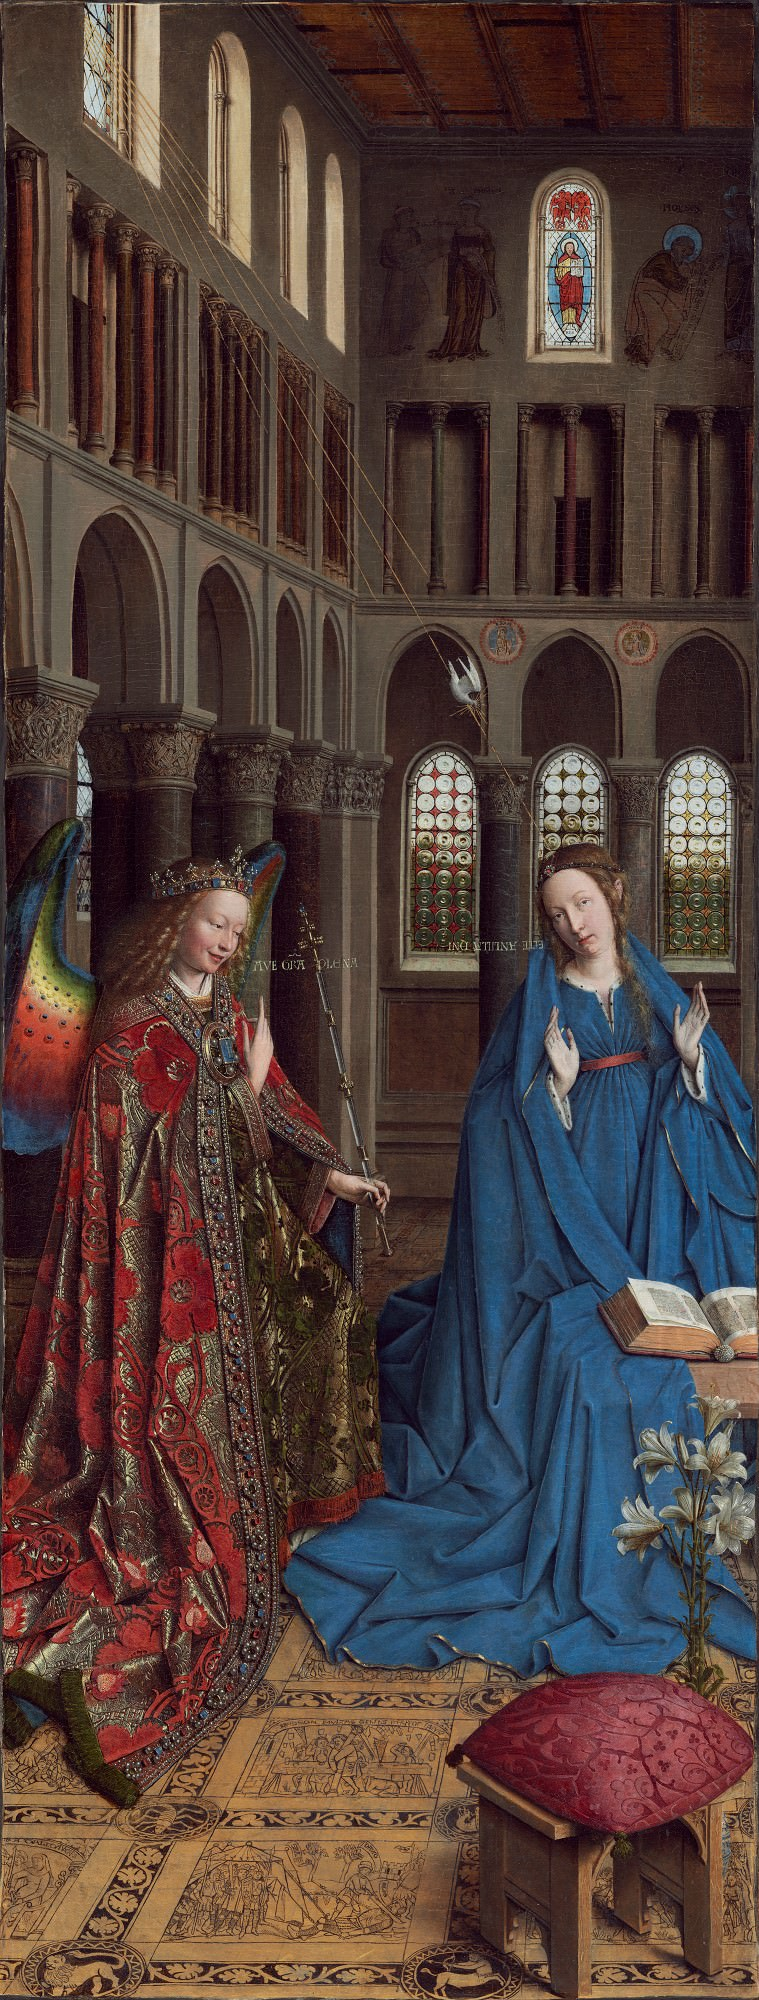 such as The Annunciation, 1434/1436, Jan van Eyck.